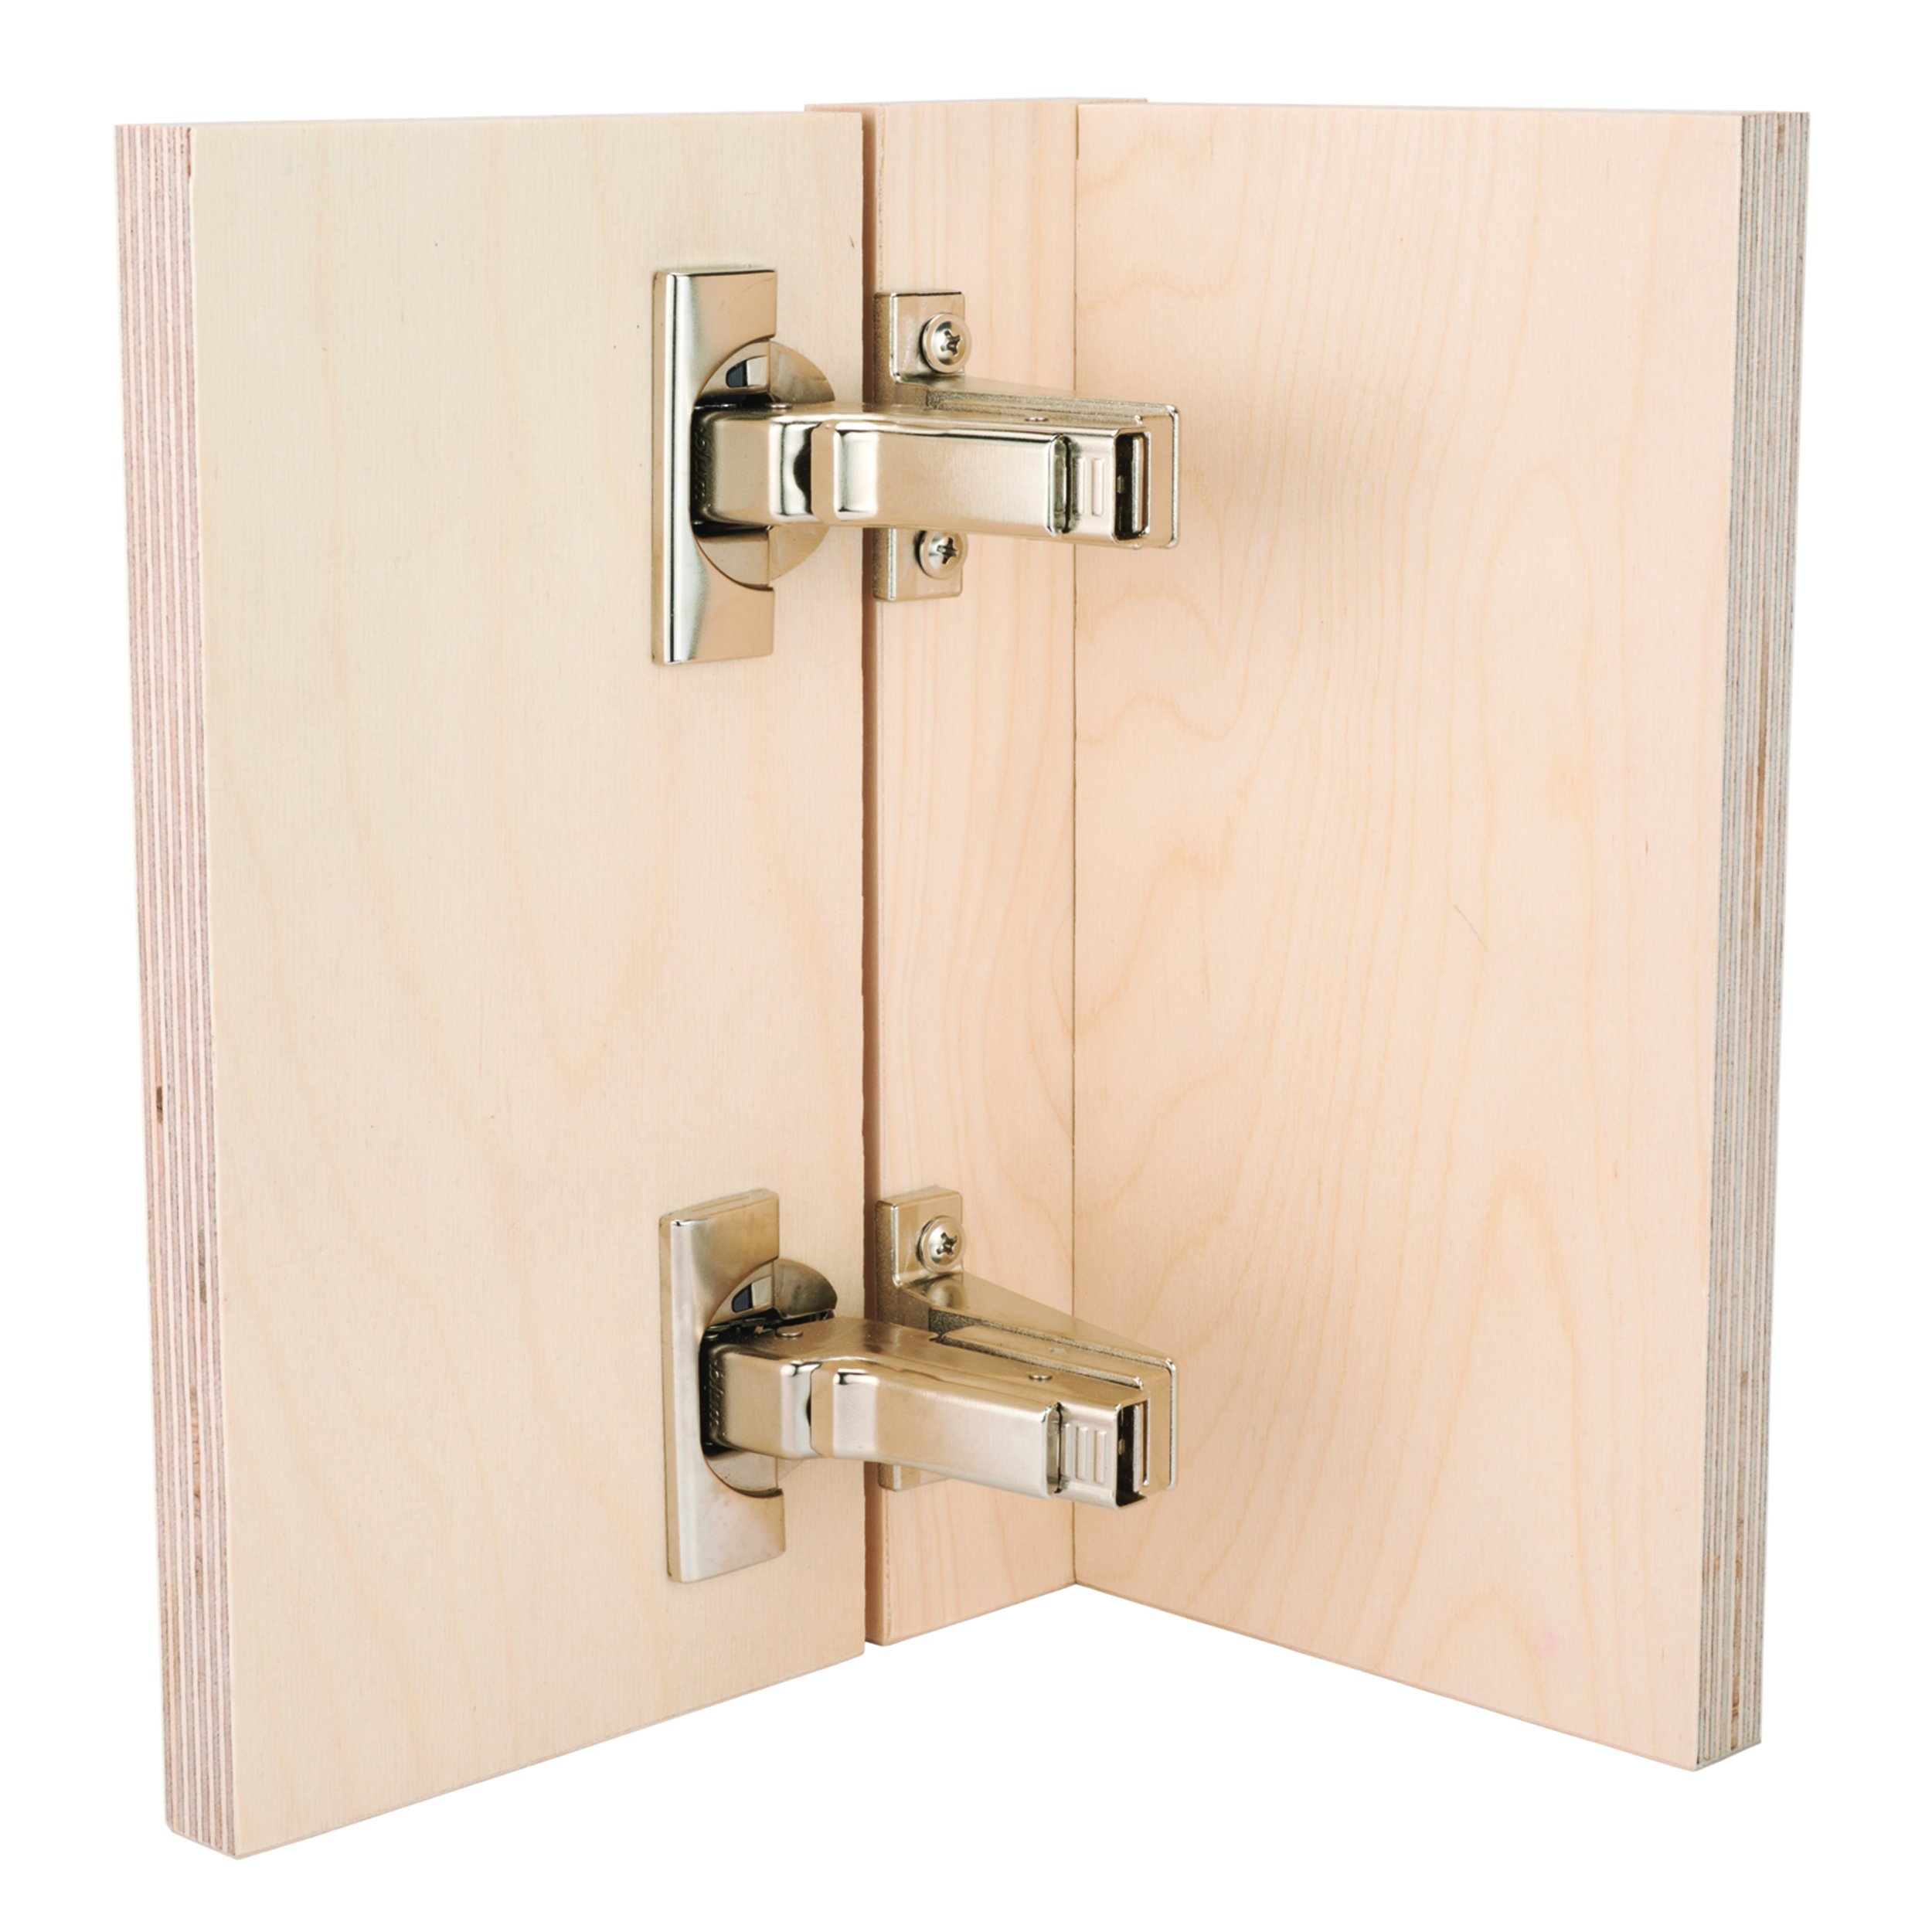 Overlay 3//4, Hinges 2 Face Frame 3//4 Woodcraft Supply PW